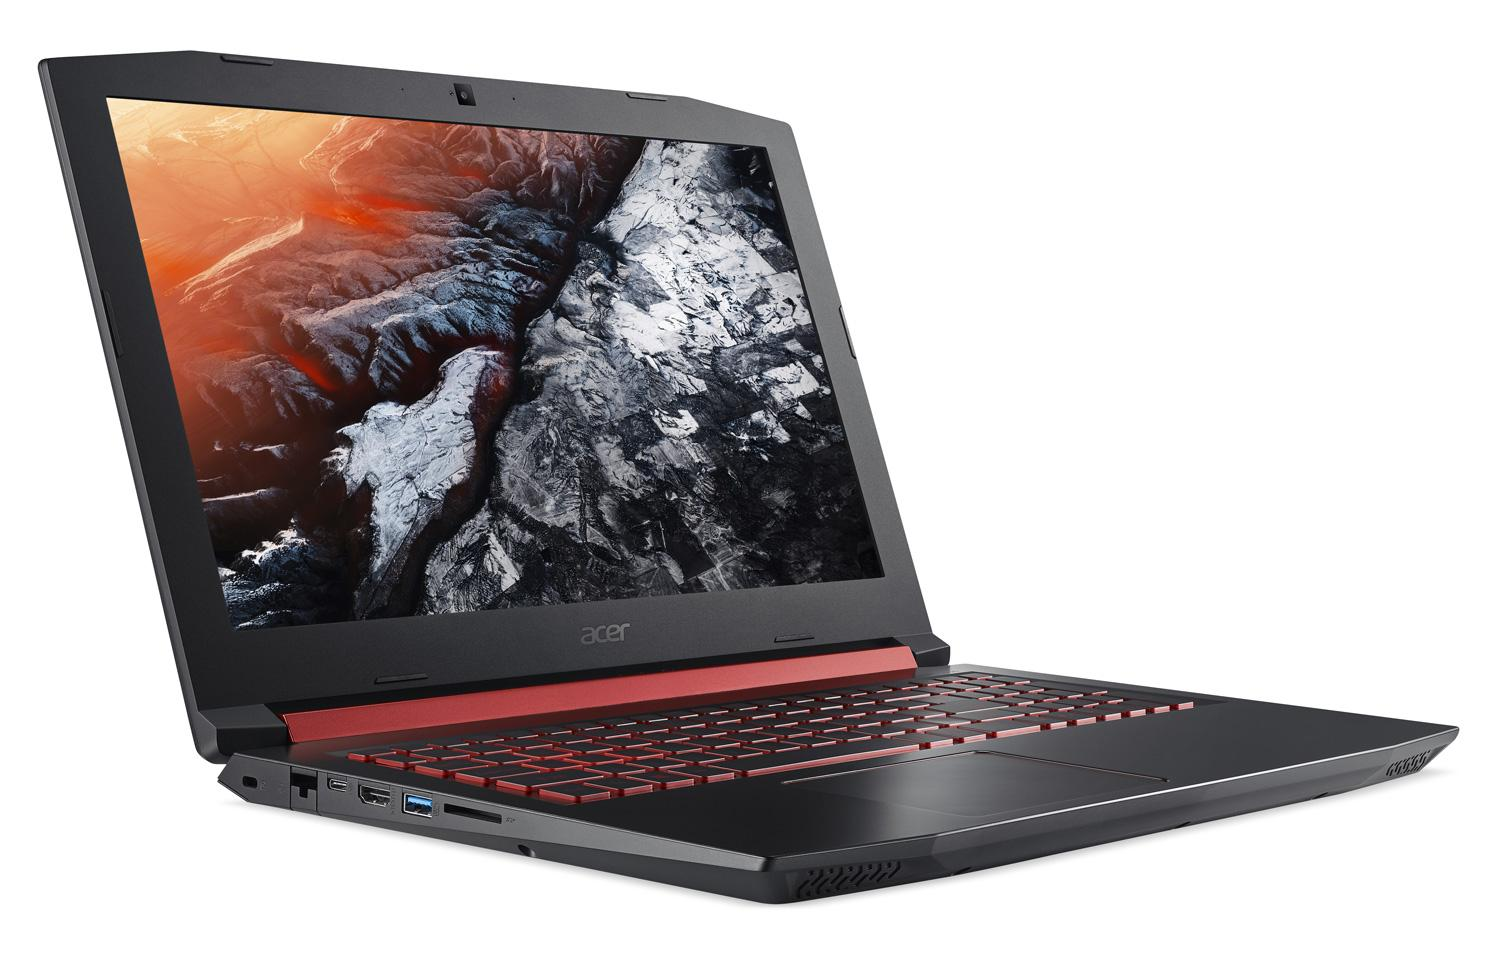 Acer Nitro AN515-51-53HT, PC 15 pouces Linux Full IPS i5 GTX 1050 (499€)